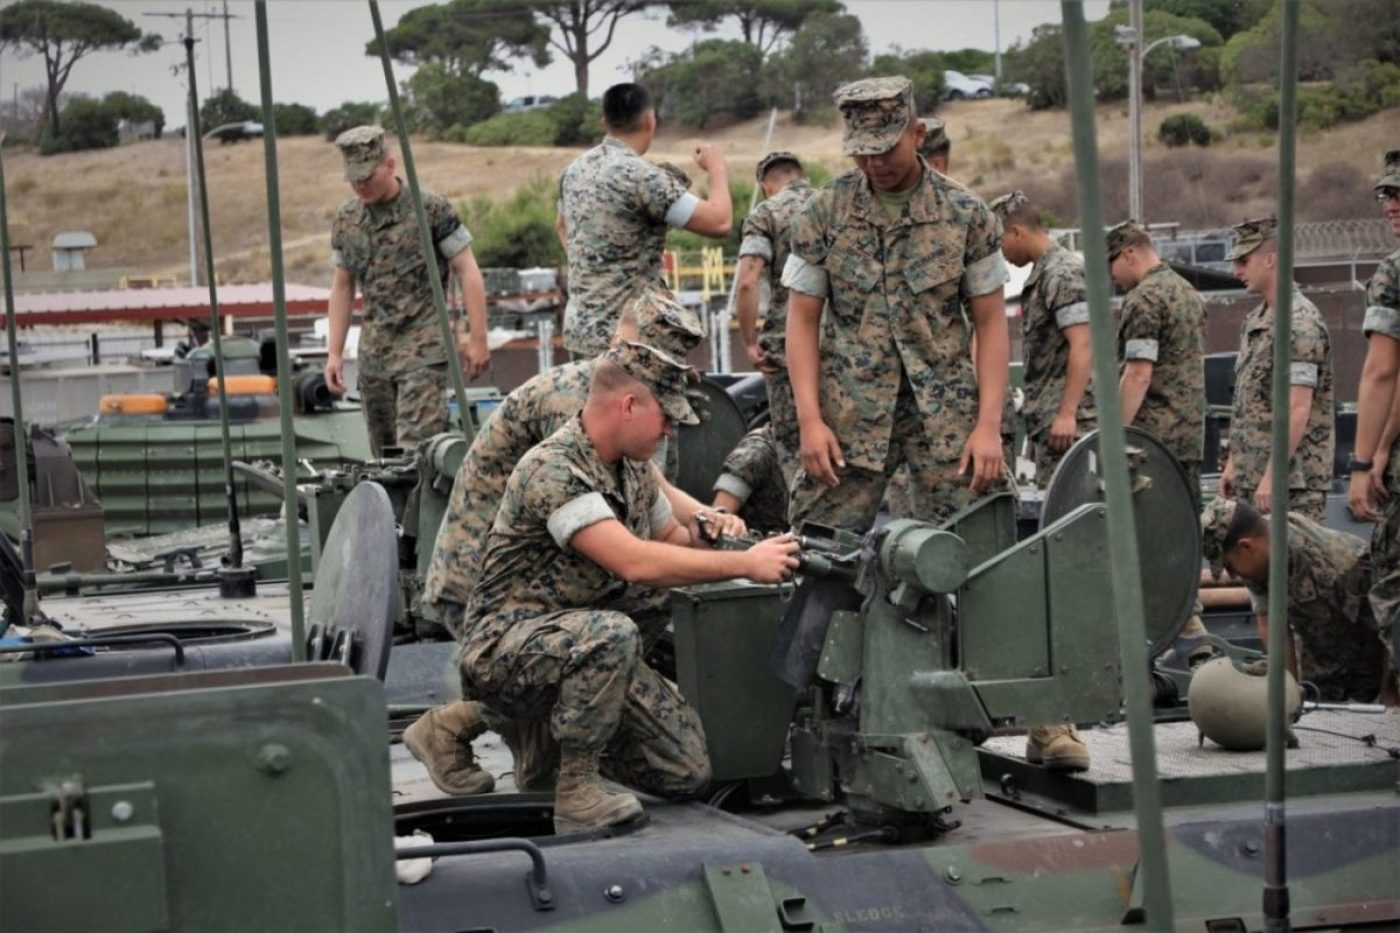 Marines from Delta Company, 3rd Assault Amphibian Battalion, examine the Common Remotely Operated Weapons System on the Amphibious Combat Vehicle for the first time Sept. 11, 2019, at the Amphibious Vehicle Test Branch aboard Camp Pendleton, California. (U.S. Marine Corps photo by Ashley Calingo)